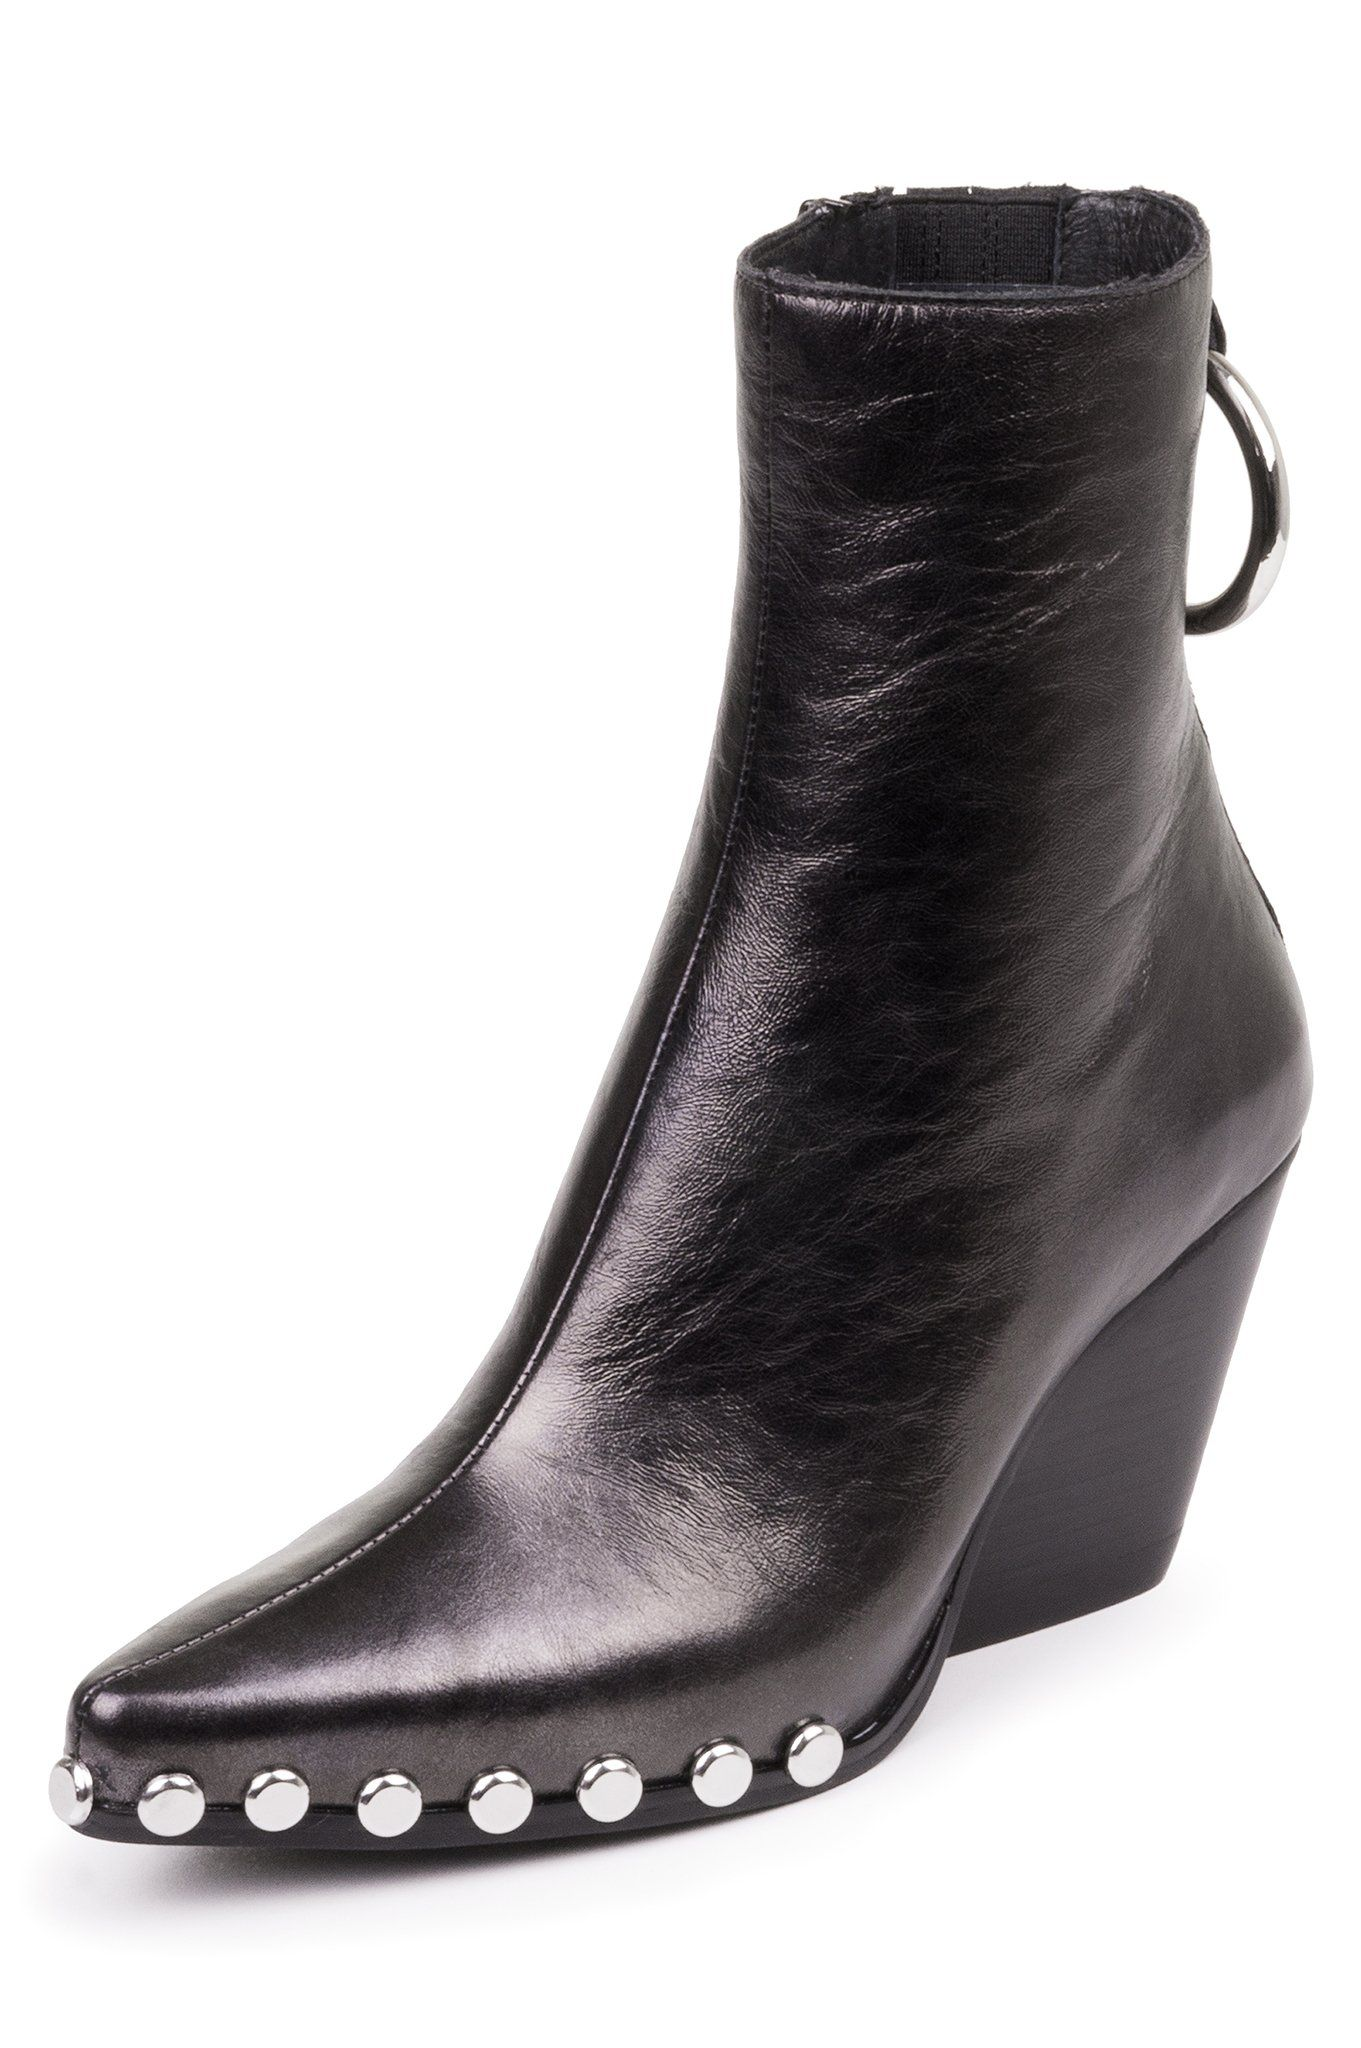 Walton Str Boots Kitten Heel Shoes Jelly Shoes Outfit